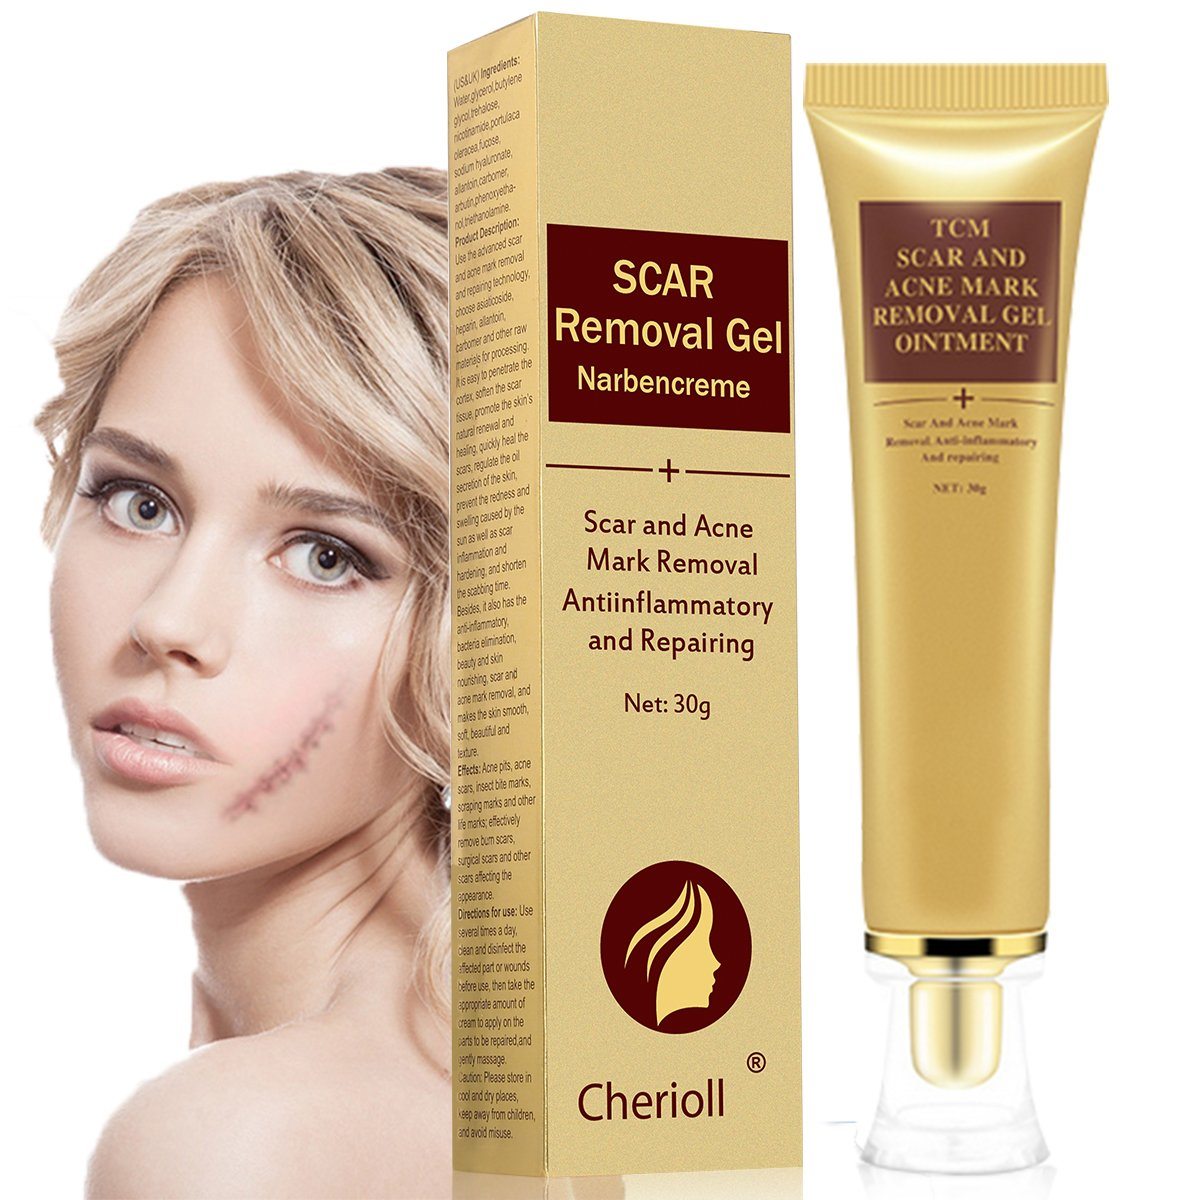 Scar Cream, Acne Scar Removal Cream, Face Skin Repair Cream, Acne Spots Treatment, Scar Gel For Stretch Marks Relief And Burns Repair (30ml) by Cherioll